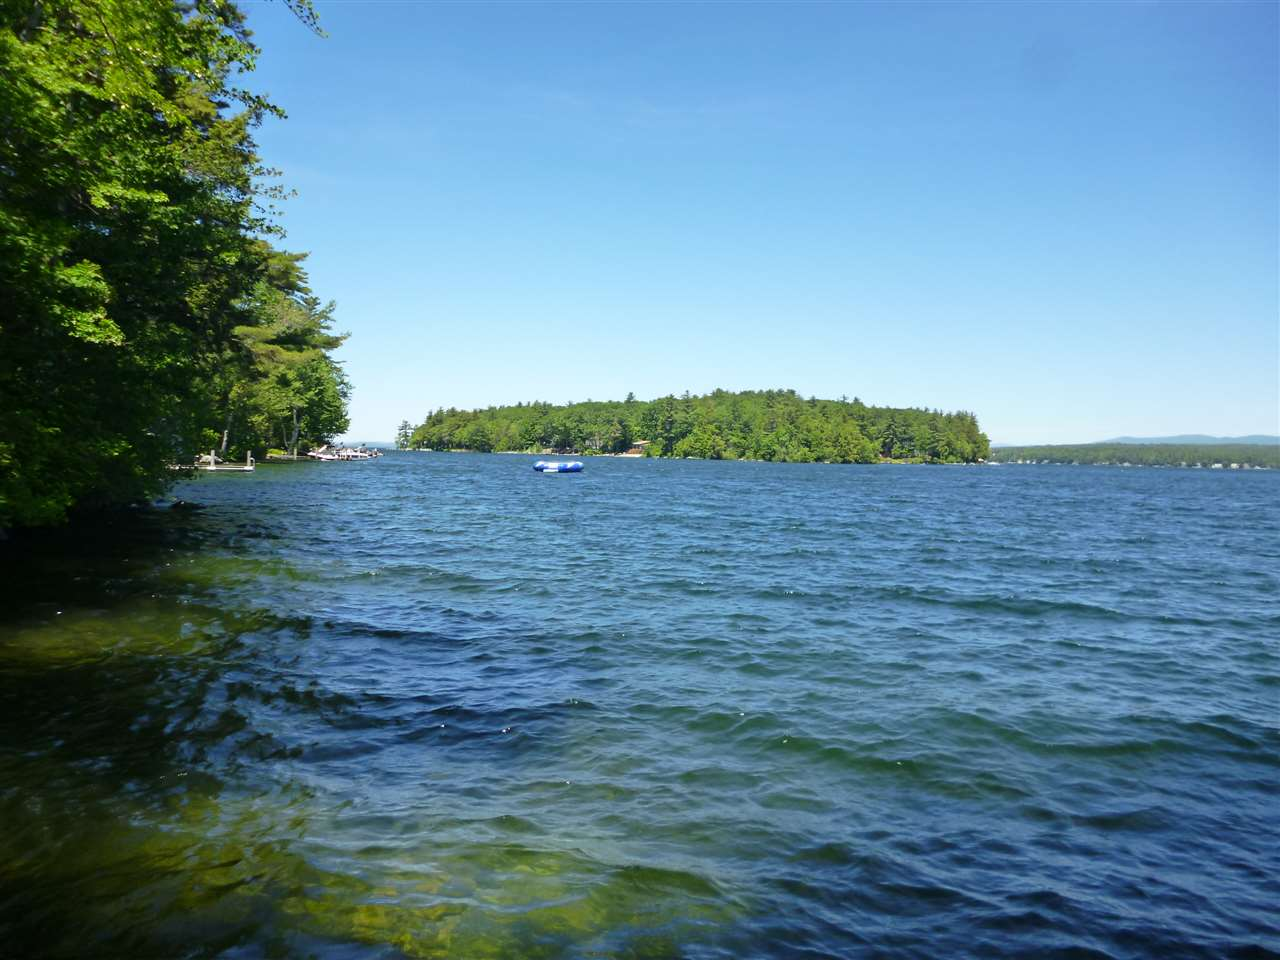 MLS 4650448: Lot 17 Pipers Point Lane, Alton NH